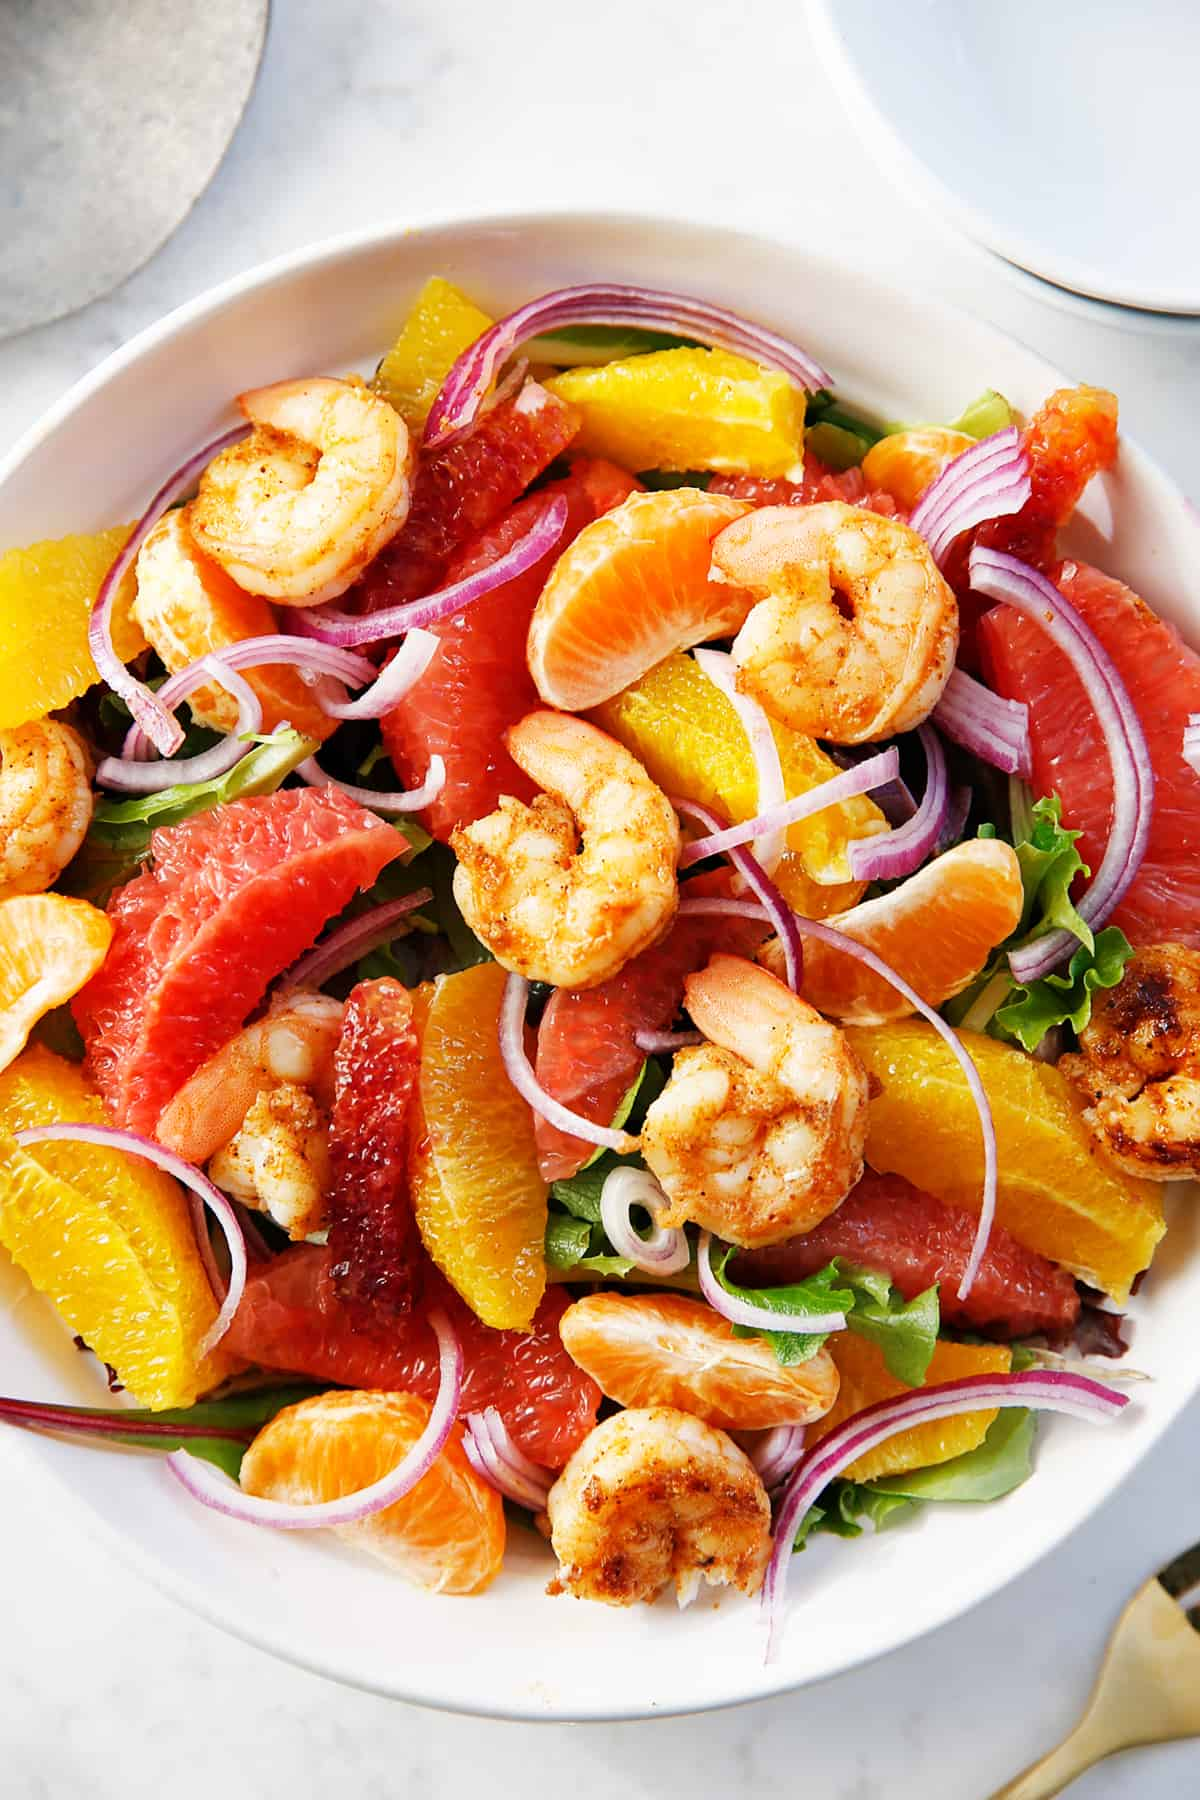 Spicy shrimp salad with citrus in a bowl.